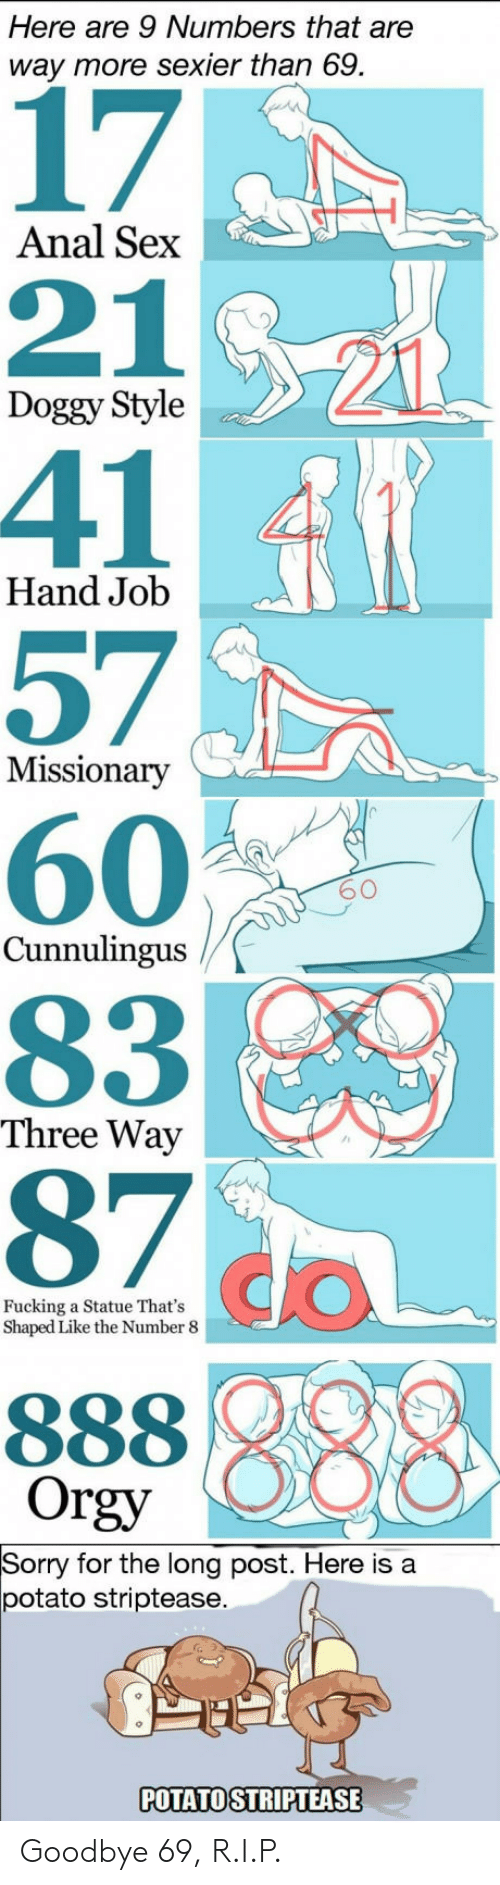 Anal Sex, Doggy Style, and Fucking: Here are 9 Numbers that are  way more sexier than 69.  17  211  41  57  60  83  97 CO  Anal Sex  21  Doggy Style  Hand Job  Missionary  60  Cunnulingus  Three Way  Fucking a Statue That's  Shaped Like the Number 8  Orgy  Sorry for the long post. Here is a  potato striptease  POTATO STRIPTEASE Goodbye 69, R.I.P.